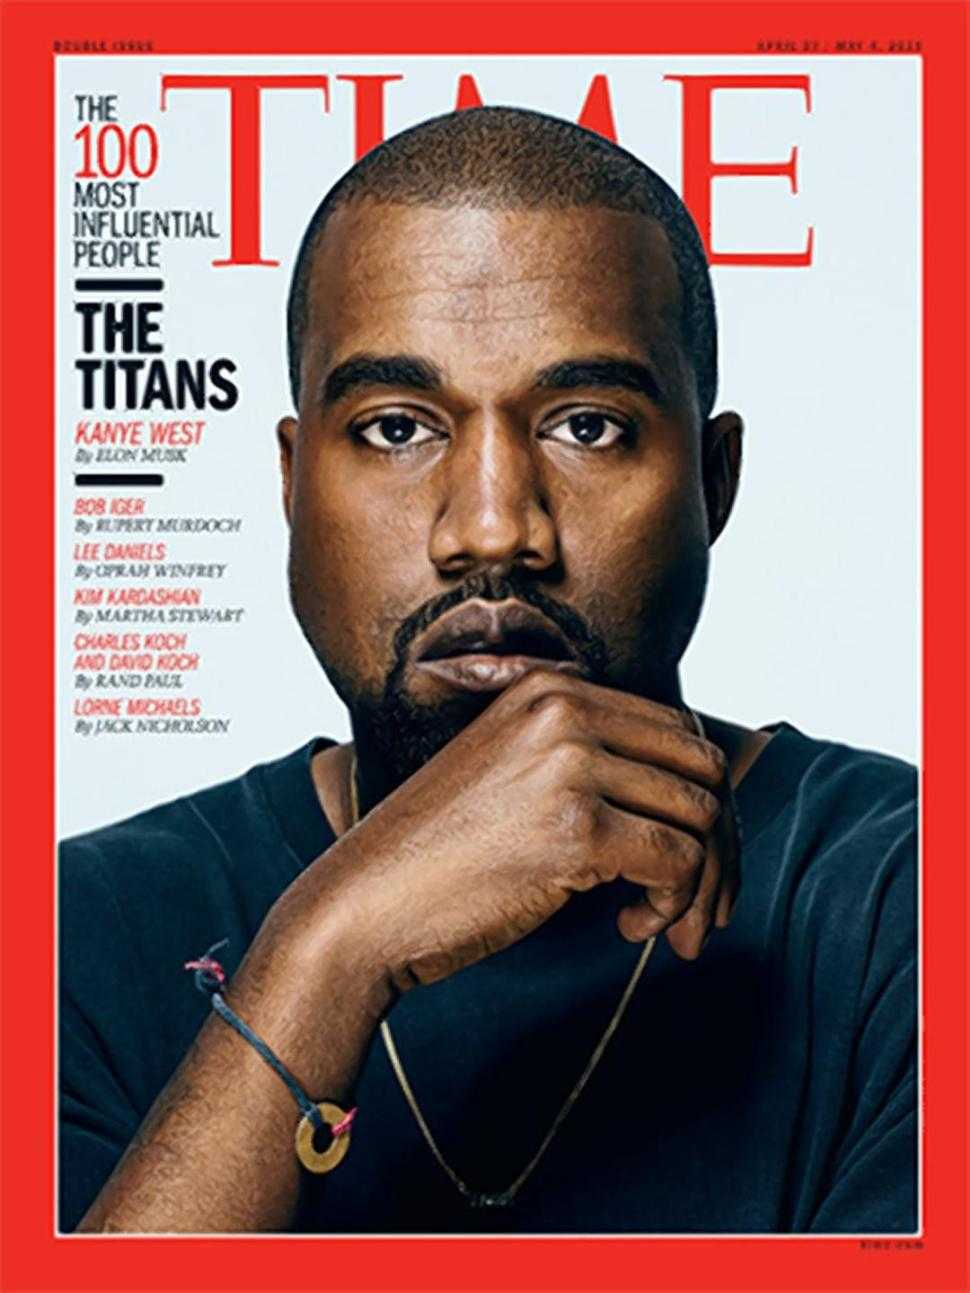 Kanye West Makes TIME's 100 List